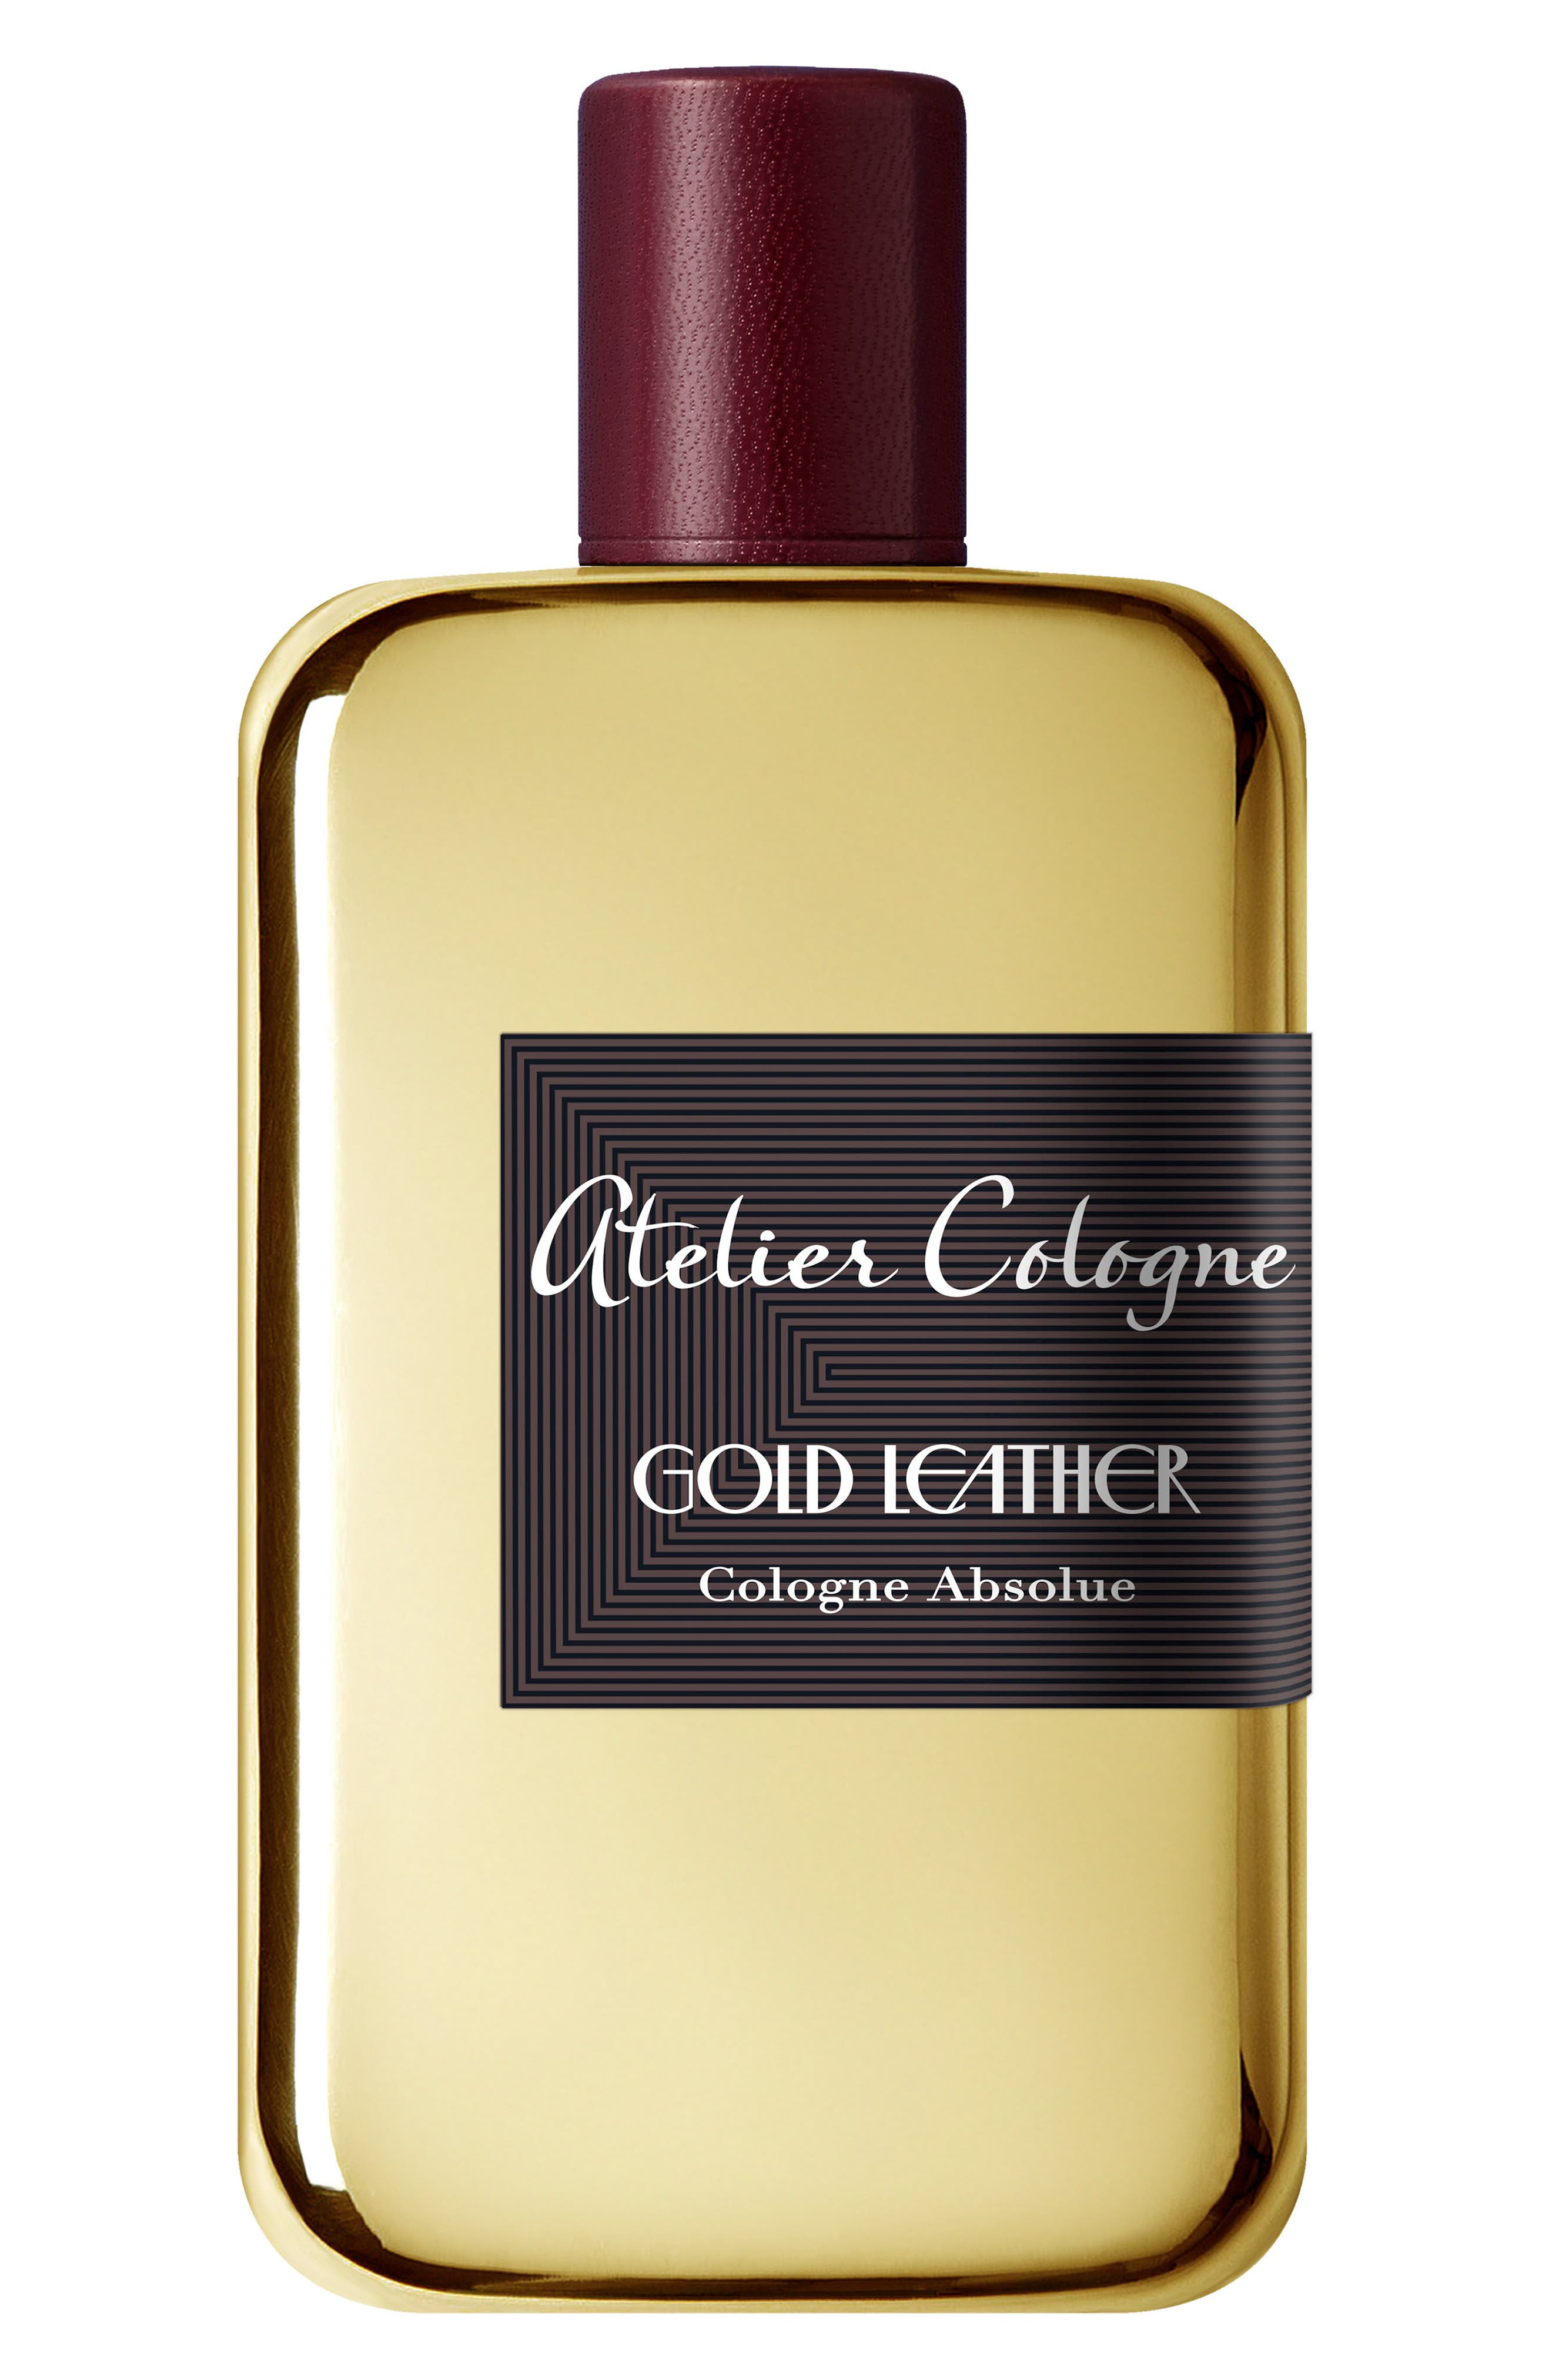 Alternate Image 1 Selected - Atelier Cologne Gold Leather Cologne Absolue